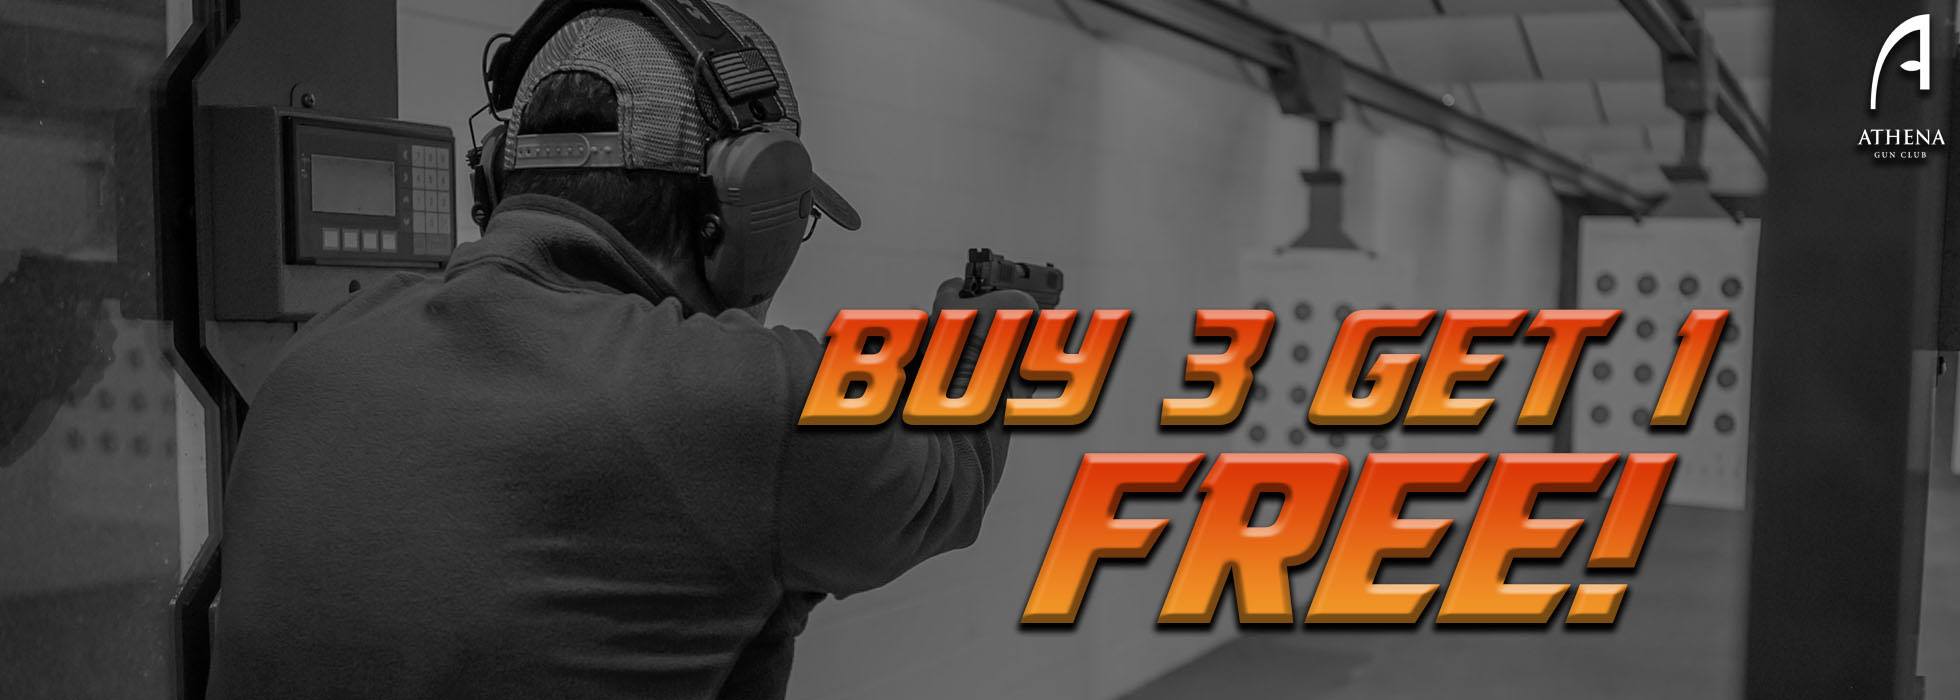 Buy 3 Private Sessions and Get 1 Private Session Free at Athena Gun Club in Houston, TX